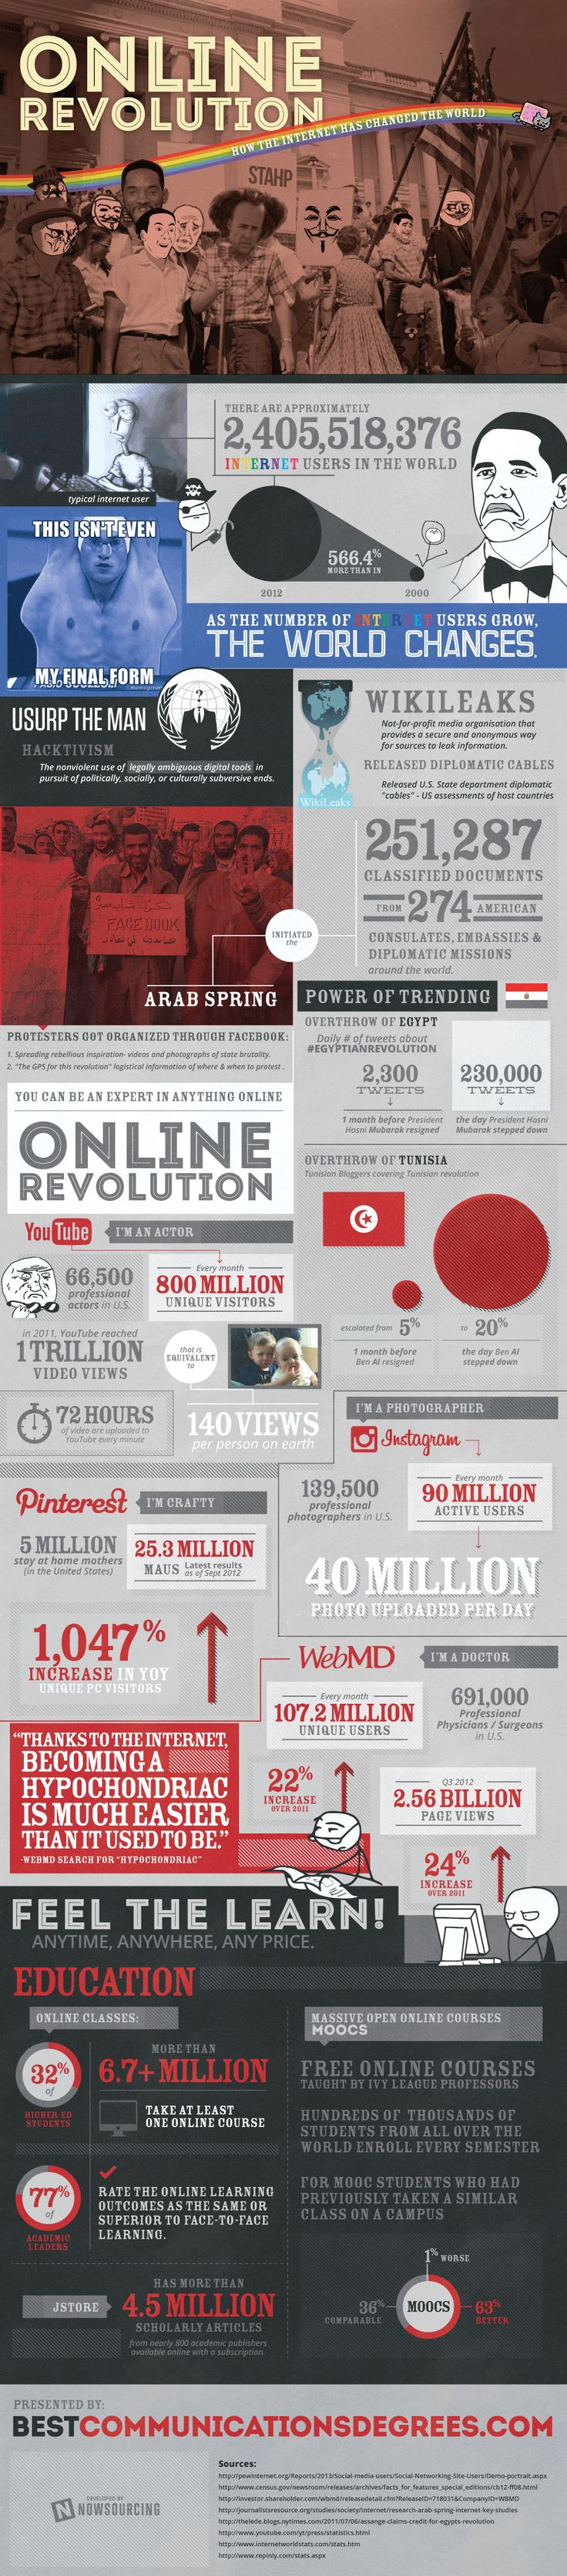 How the Internet has Changed the World. #infographic